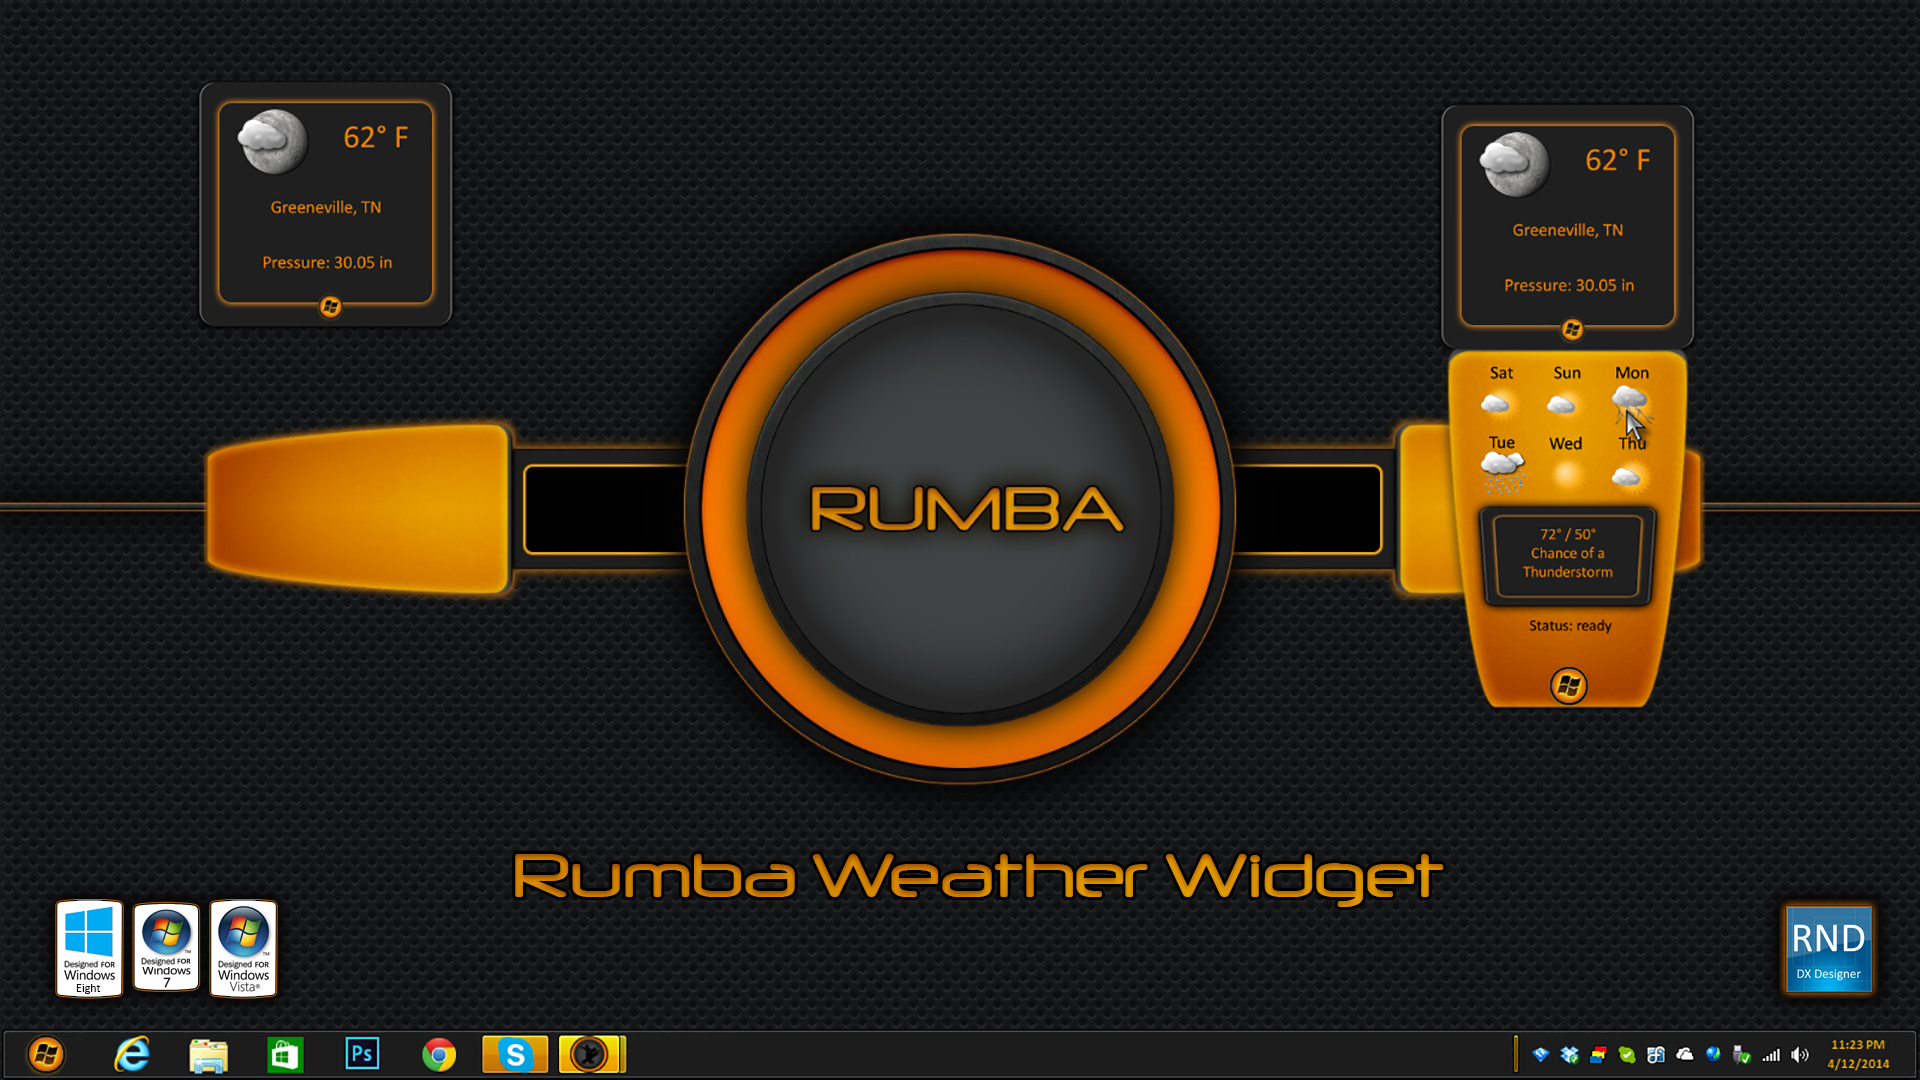 Rumba Weather Widget